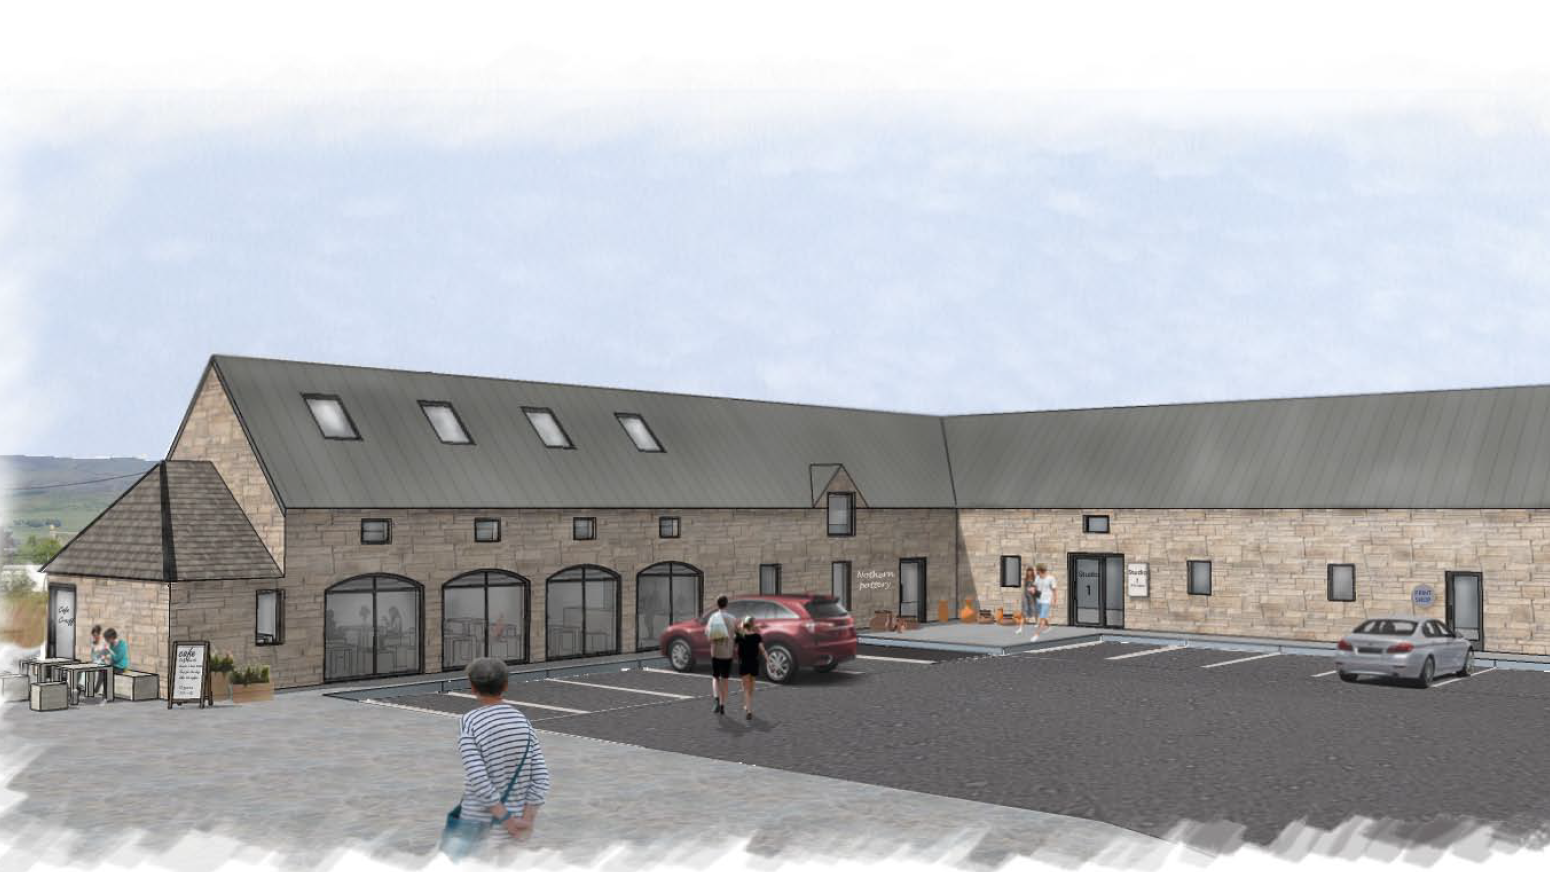 Artists Impression of Completed Development